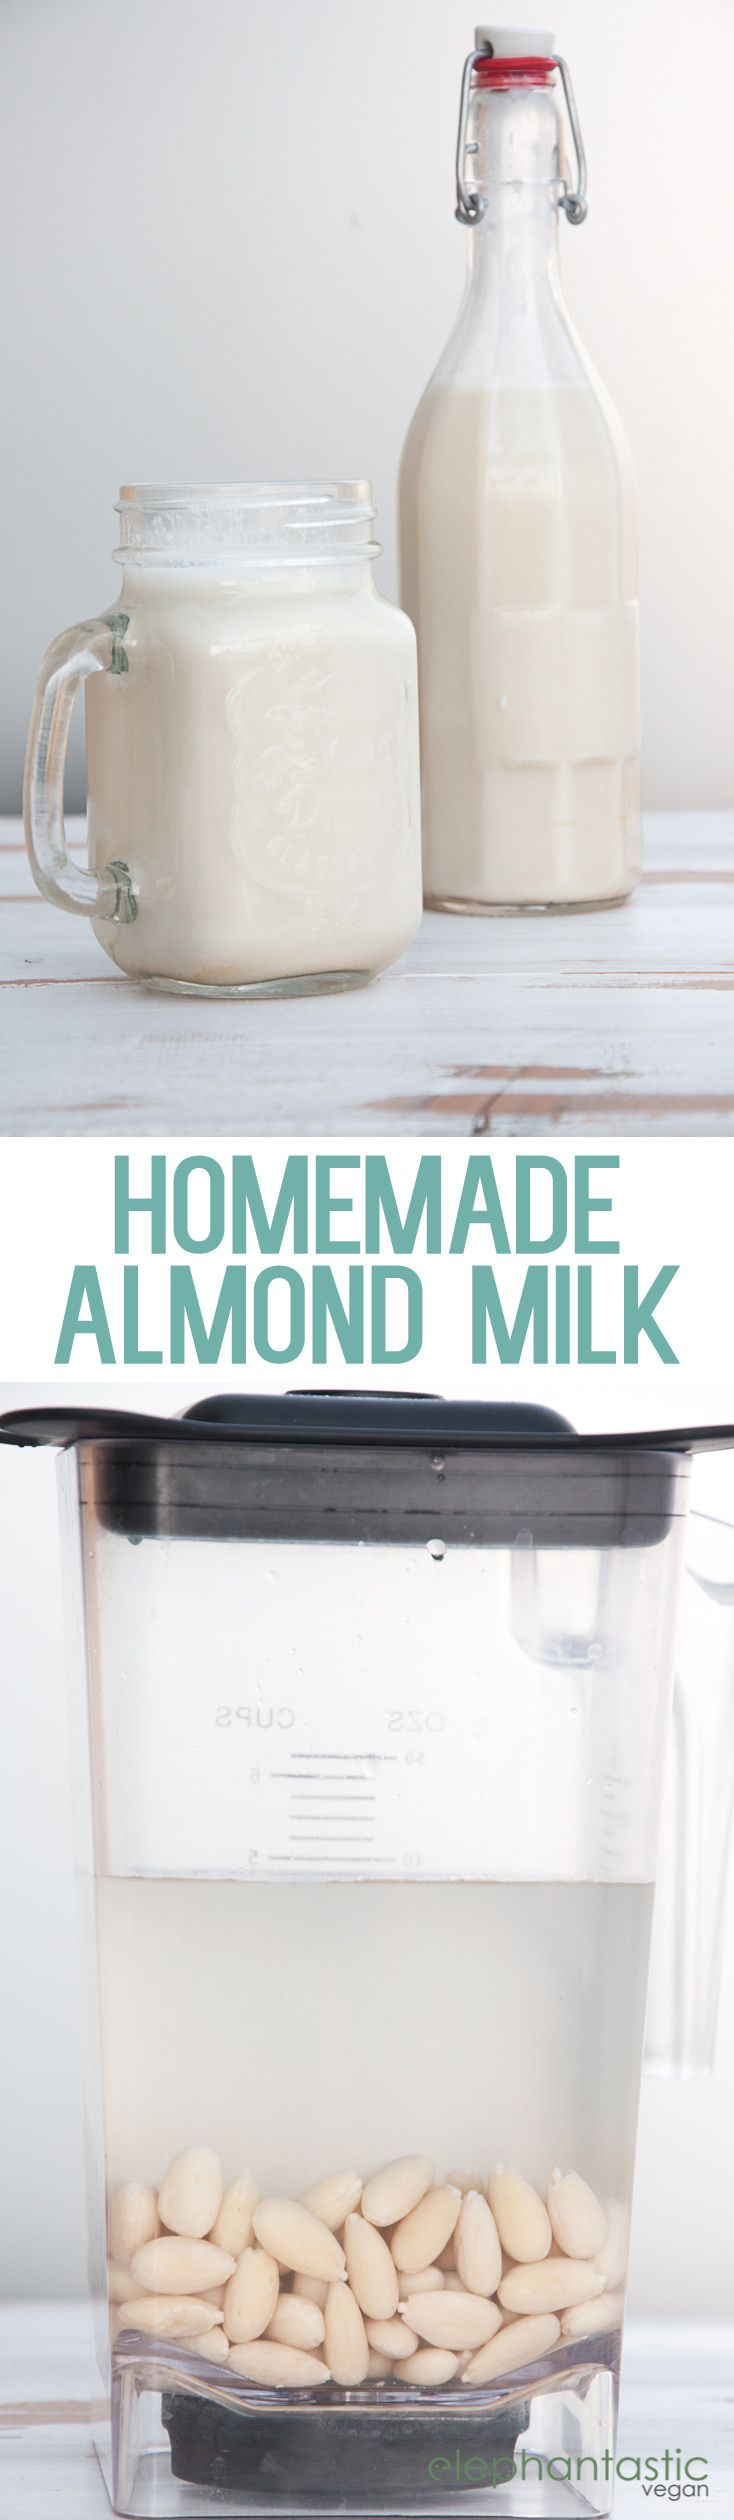 Homemade Almond Milk | ElephantasticVegan.com